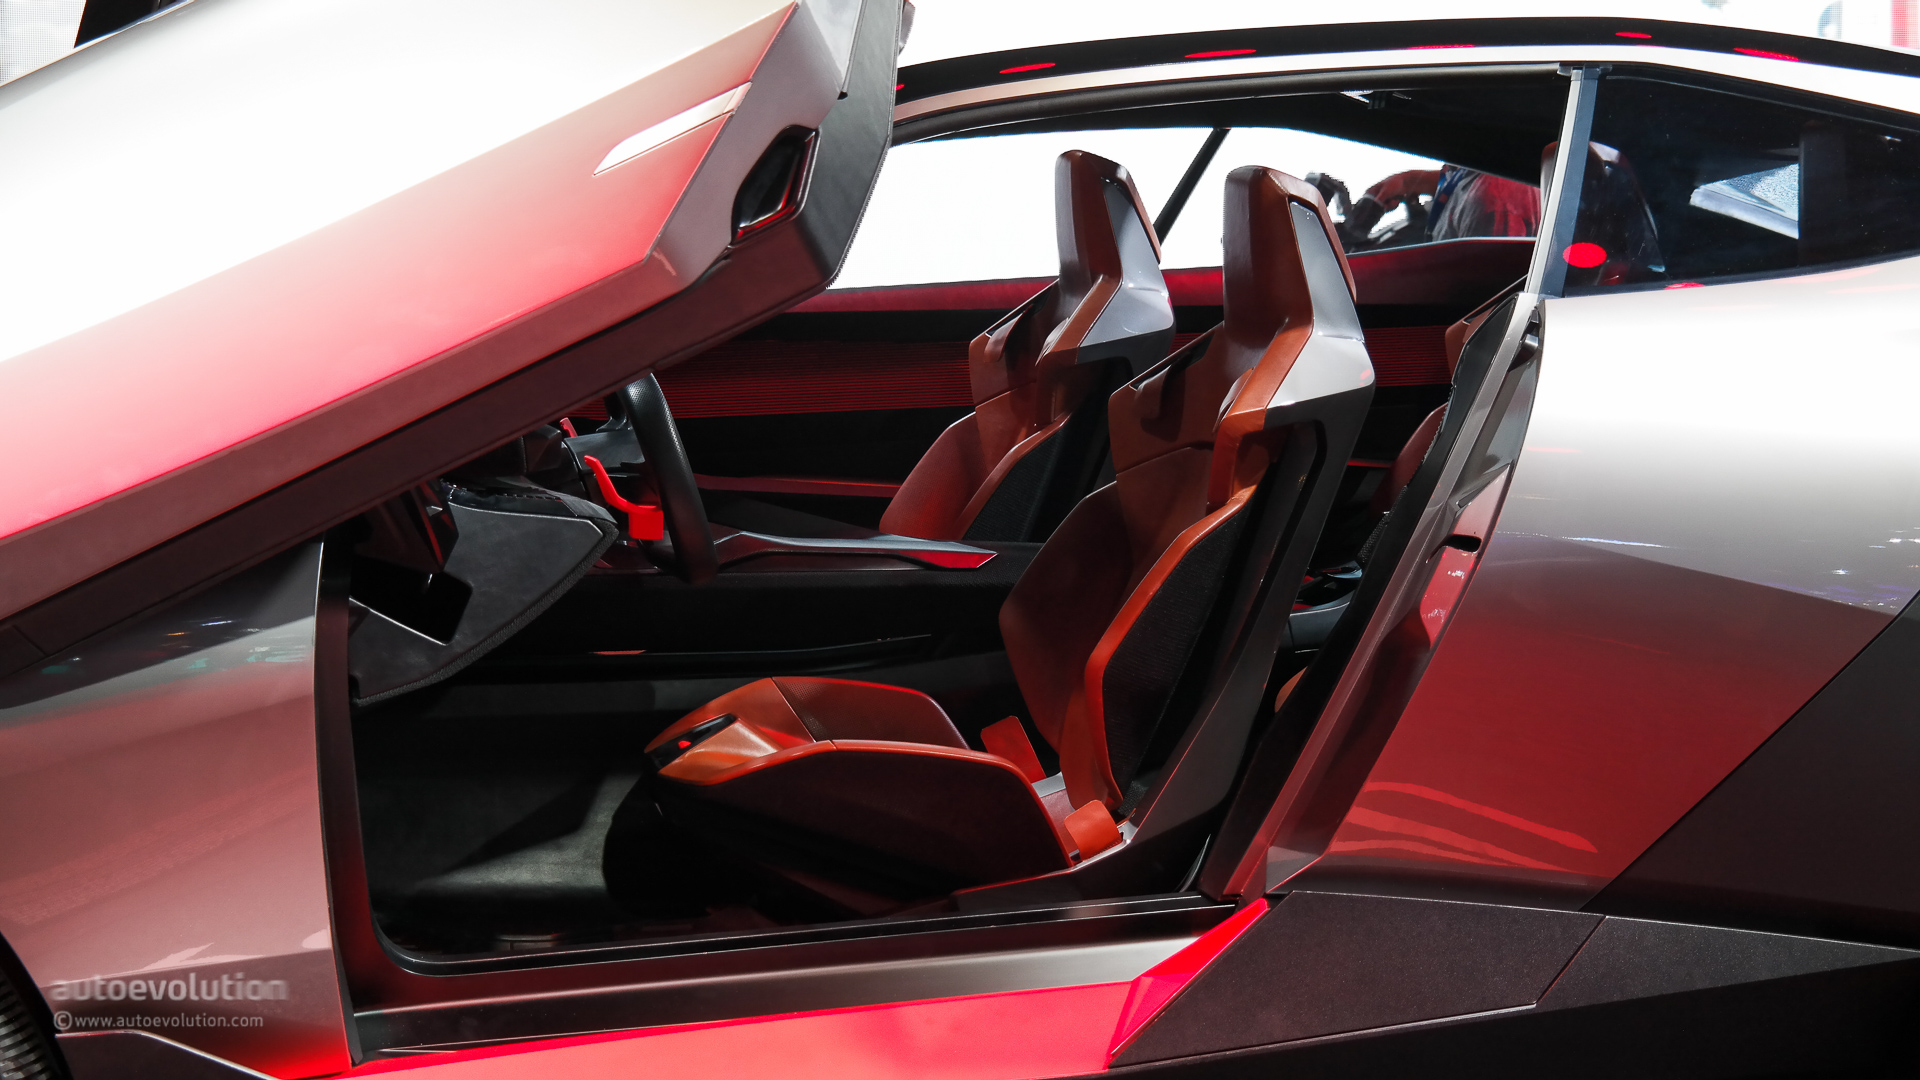 Maxresdefault in addition Hp Peugeot Quartz Concept Previews Future French Suv At Paris Live Photos additionally Peugeot E Legend Interior moreover X Lg in addition Pmd. on peugeot 3008 interior